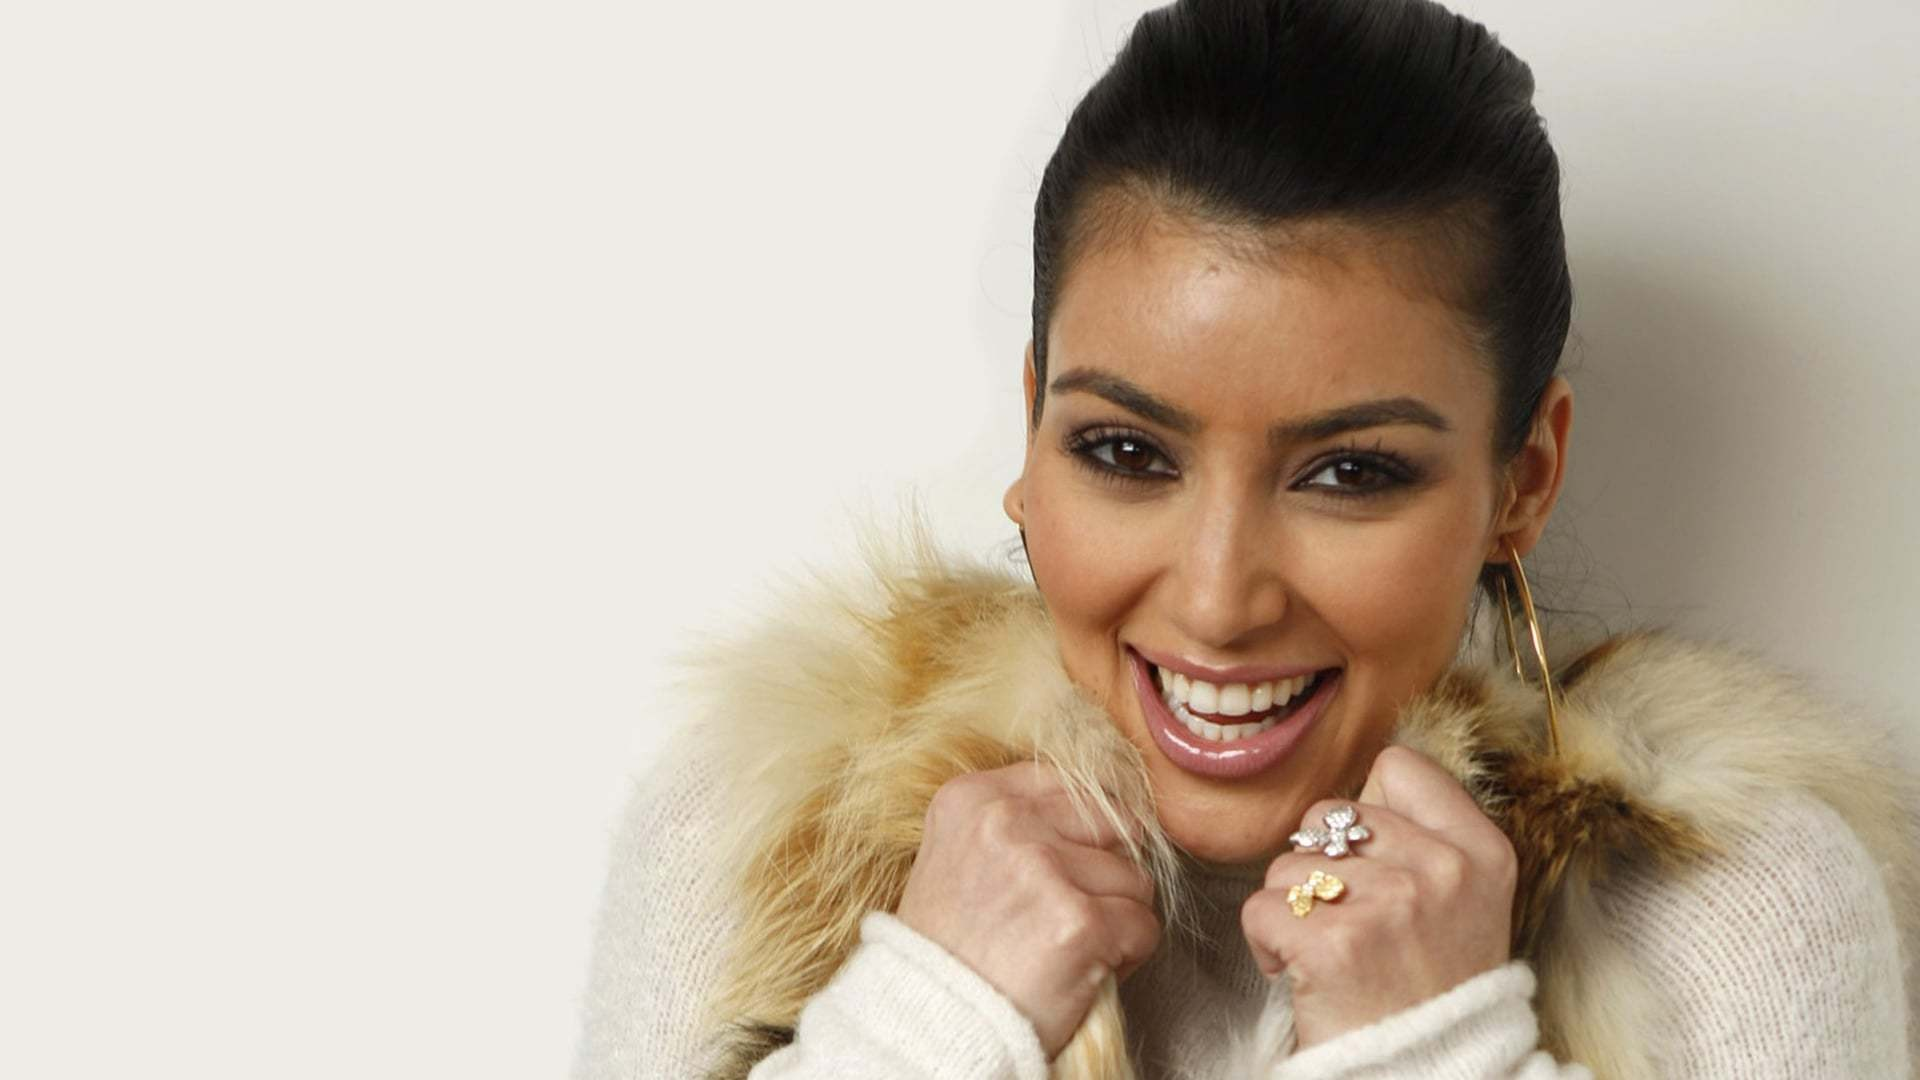 Dewey-Holiday-kim-kardashian-image-Full-HD-Backgrounds-1920x1080-px-wallpaper-wp3404643